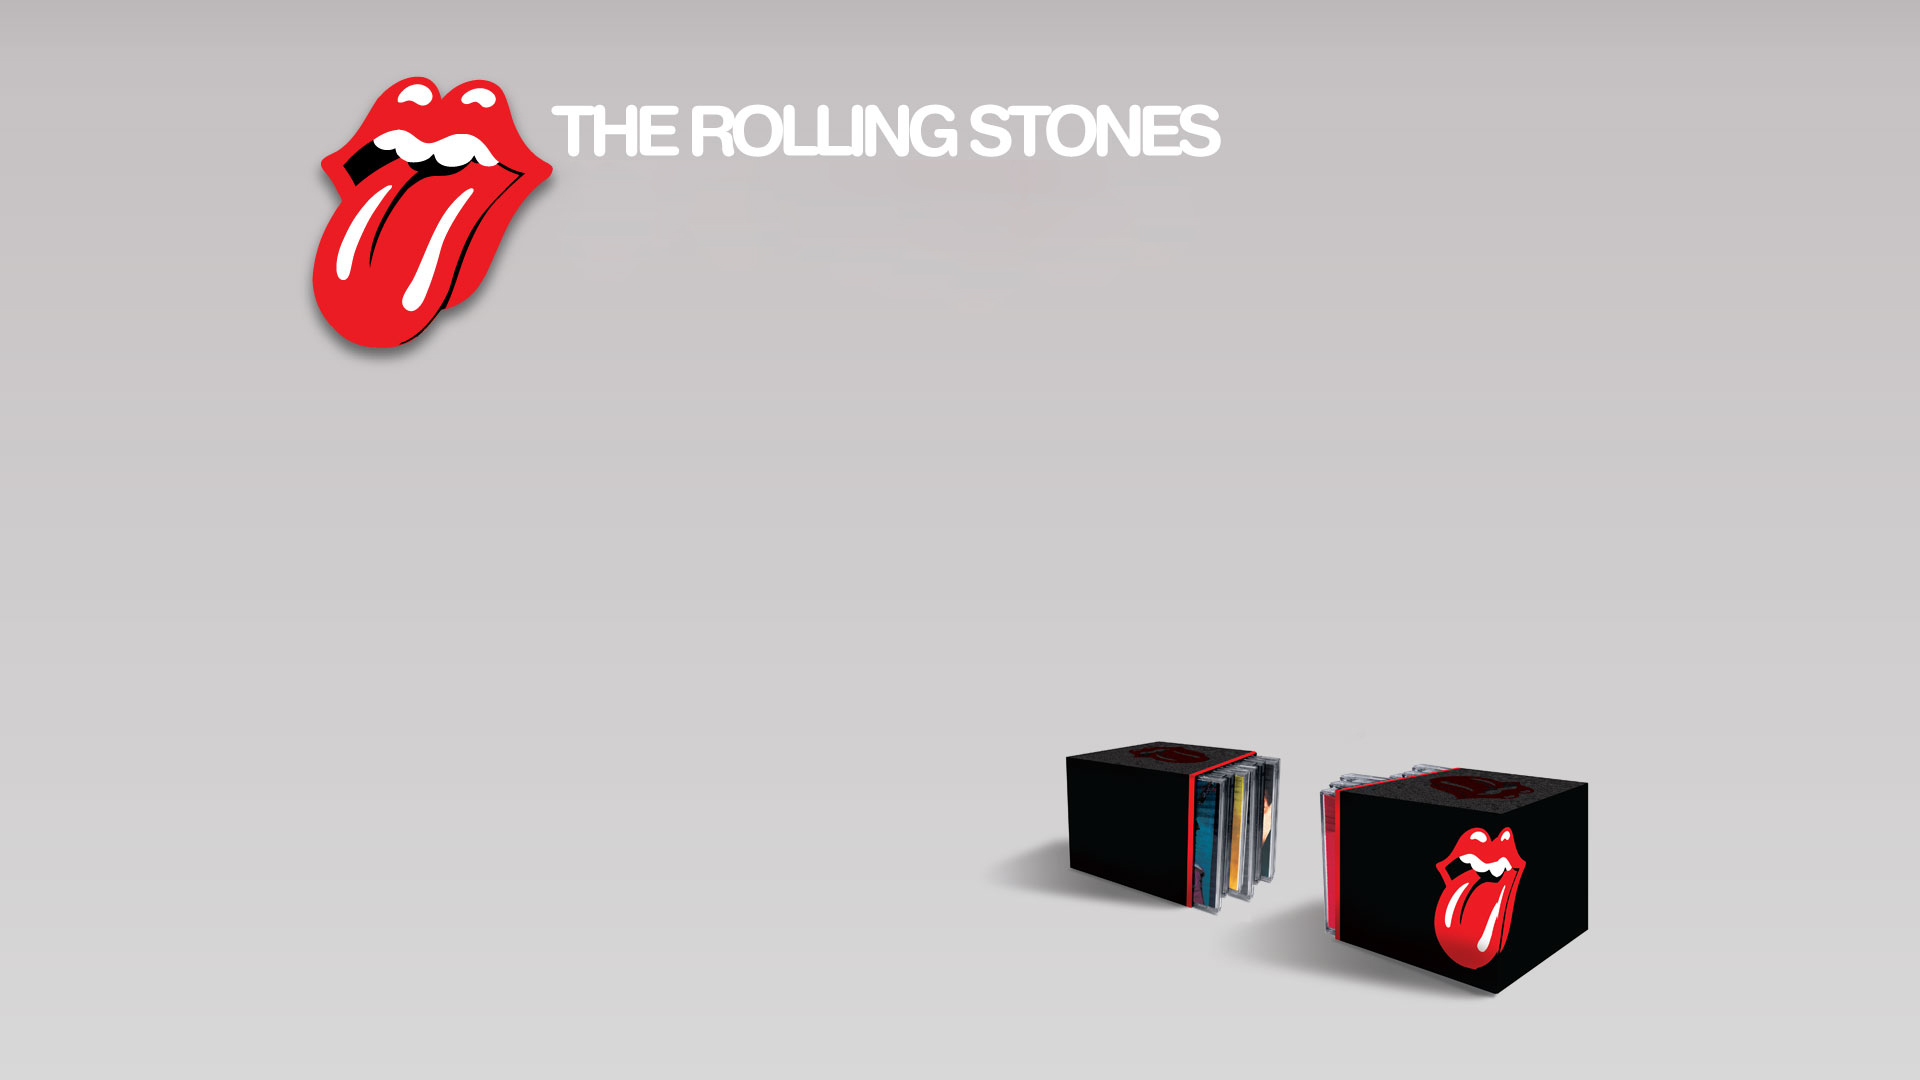 The Rolling Stones background The Rolling Stones wallpapers 1920x1080